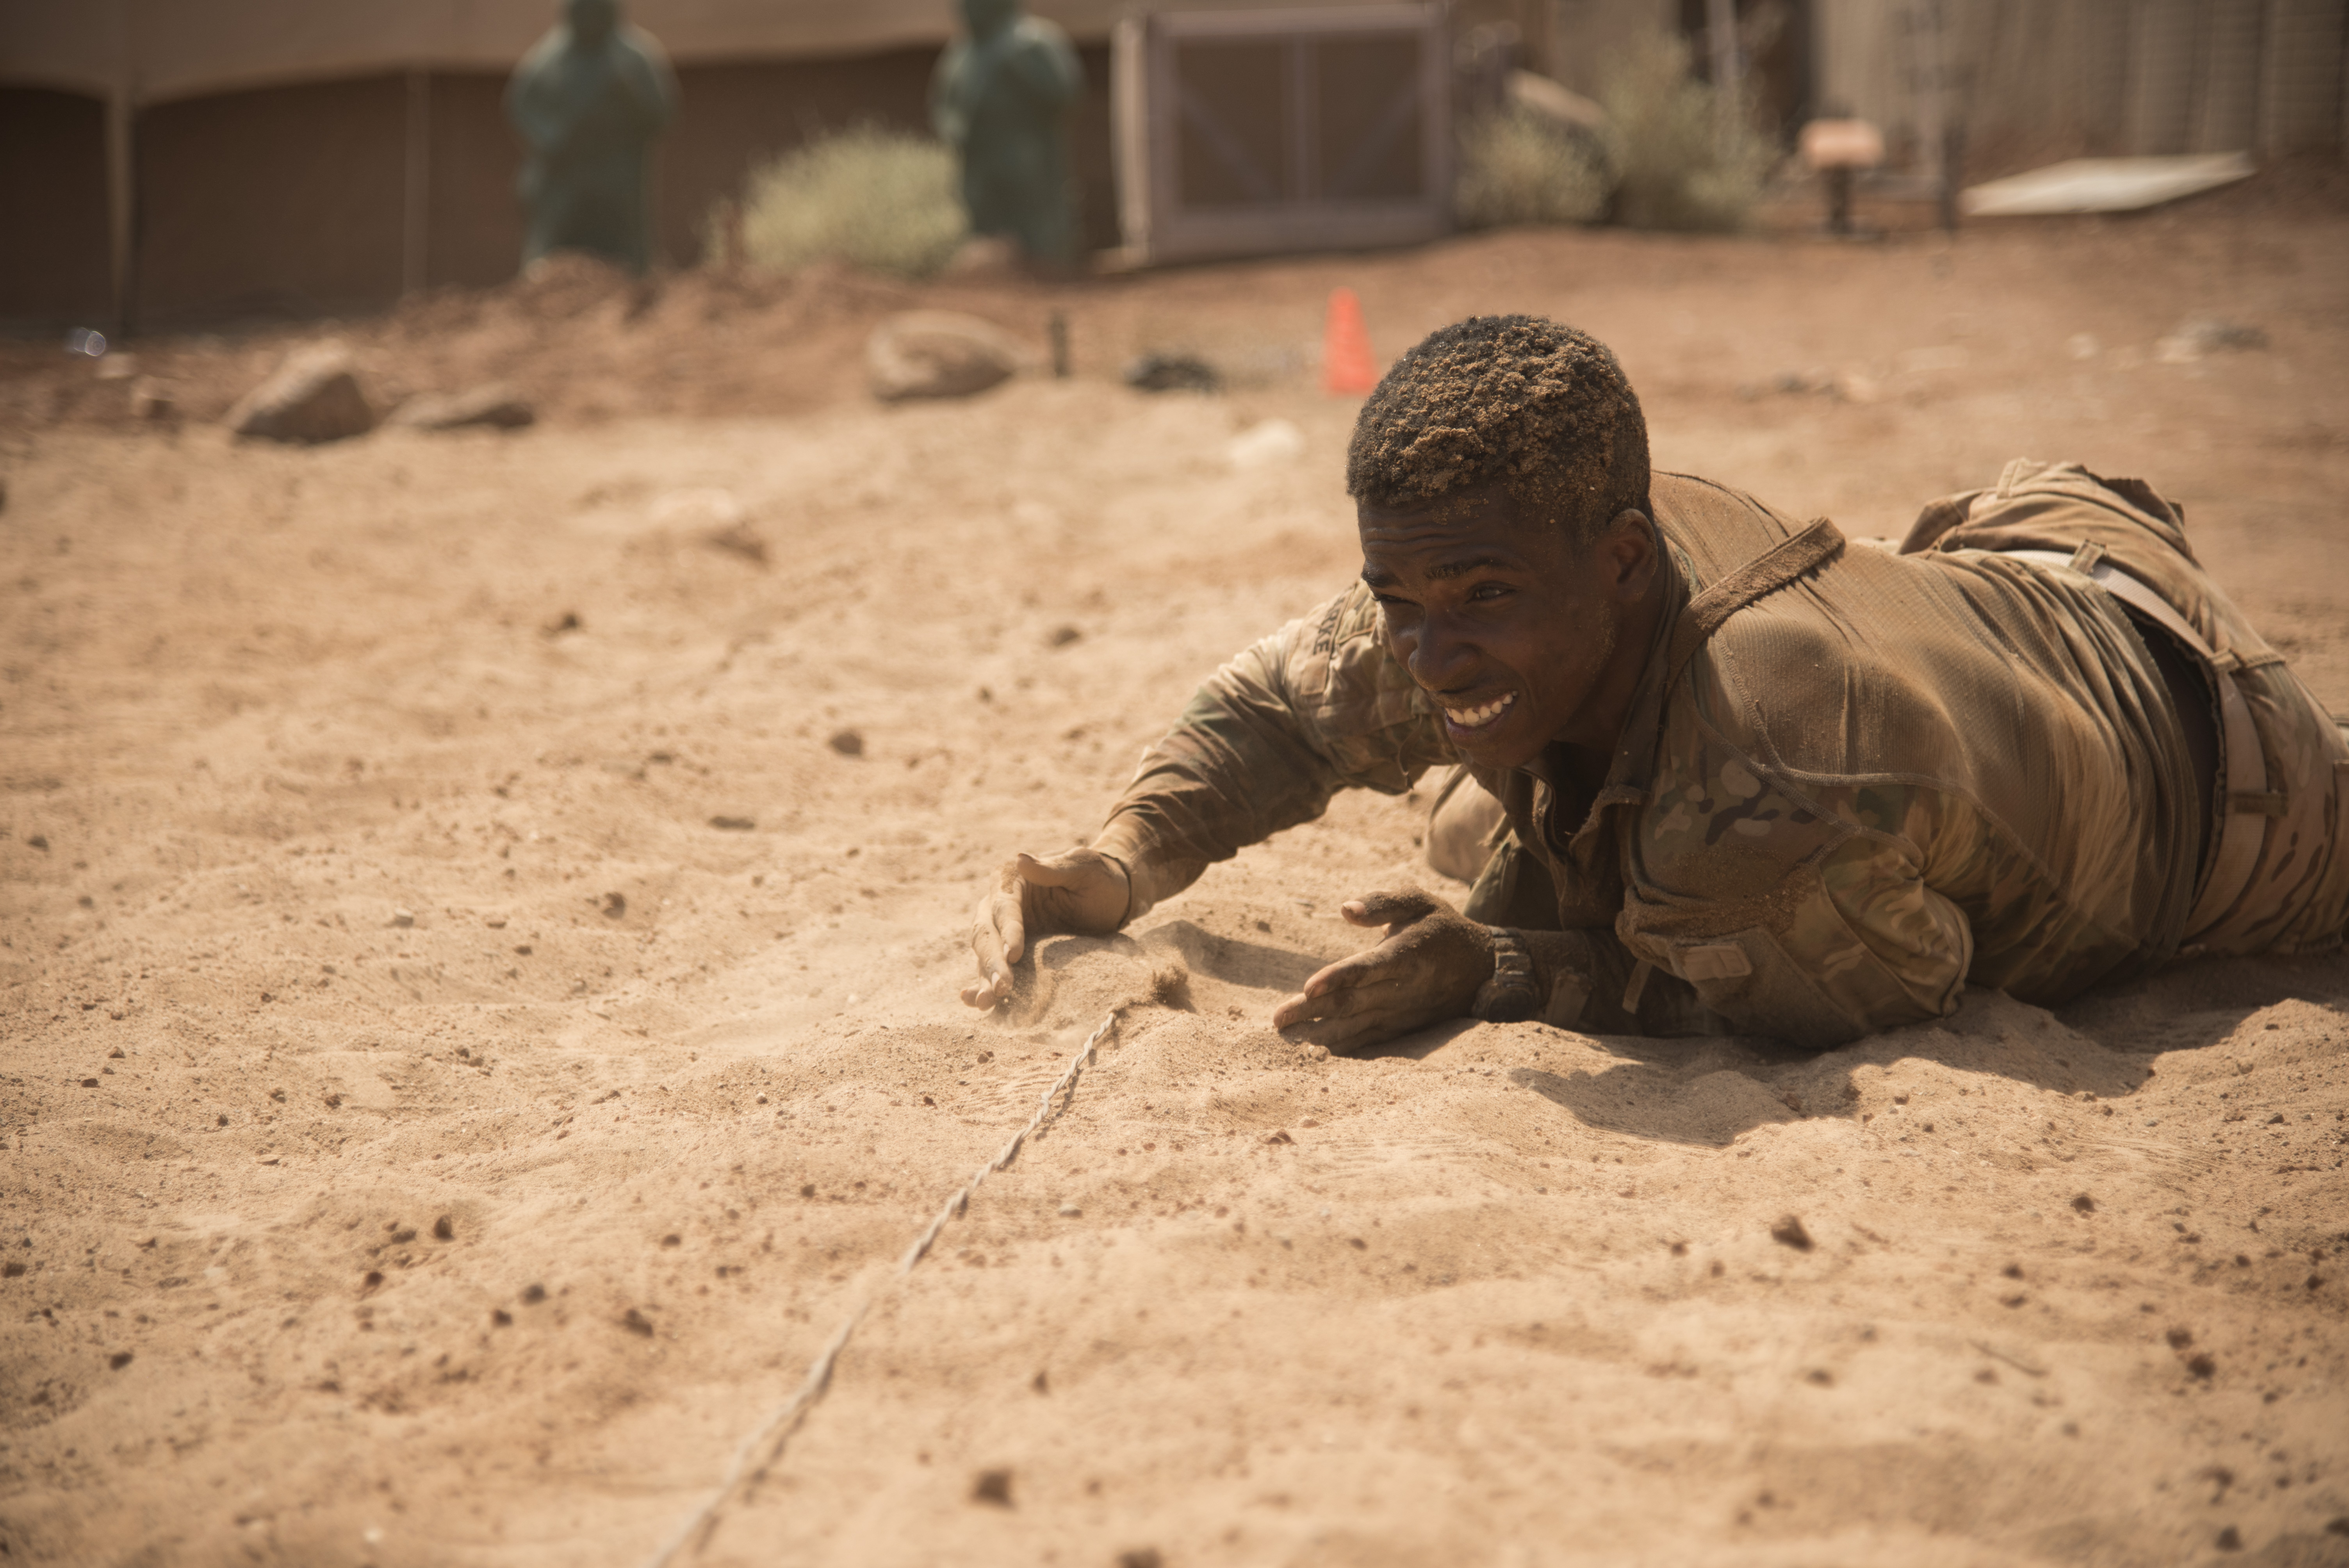 DJIBOUTI- U.S. Army Spc. Carey Clarke, 1st Battalion, 124th Infantry Regiment, hides a wire after securing a mock claymore mine during a spur ride event, Oct. 21, 2016, at a nearby airfield, in Djibouti. Twenty-eight U.S. Army Soldiers and one Air Force Airman participated in the traditional Army event where they completed 10 tasks with various stress events before each task in approximately 19 hours. (U.S. Air Force photo by Staff Sgt. Tiffany DeNault)